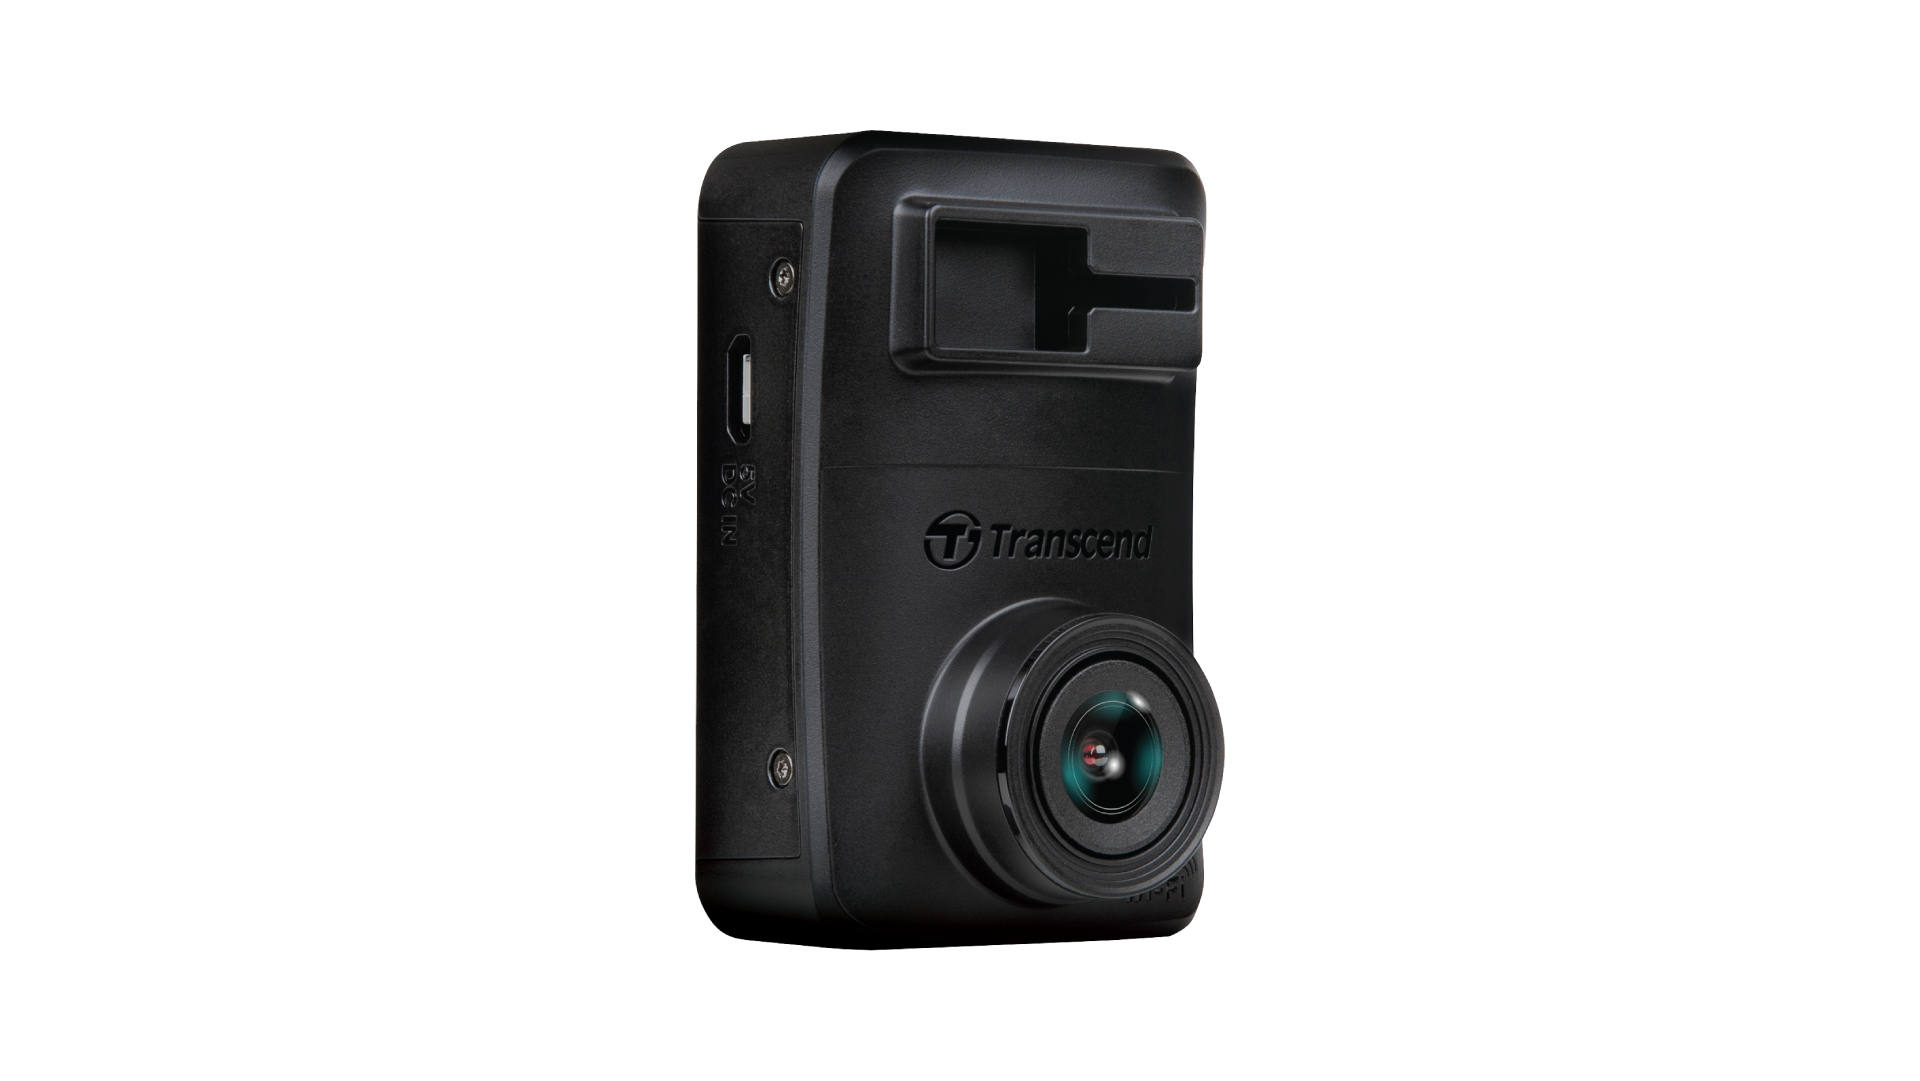 Dashcam / Transcend Information, Inc.